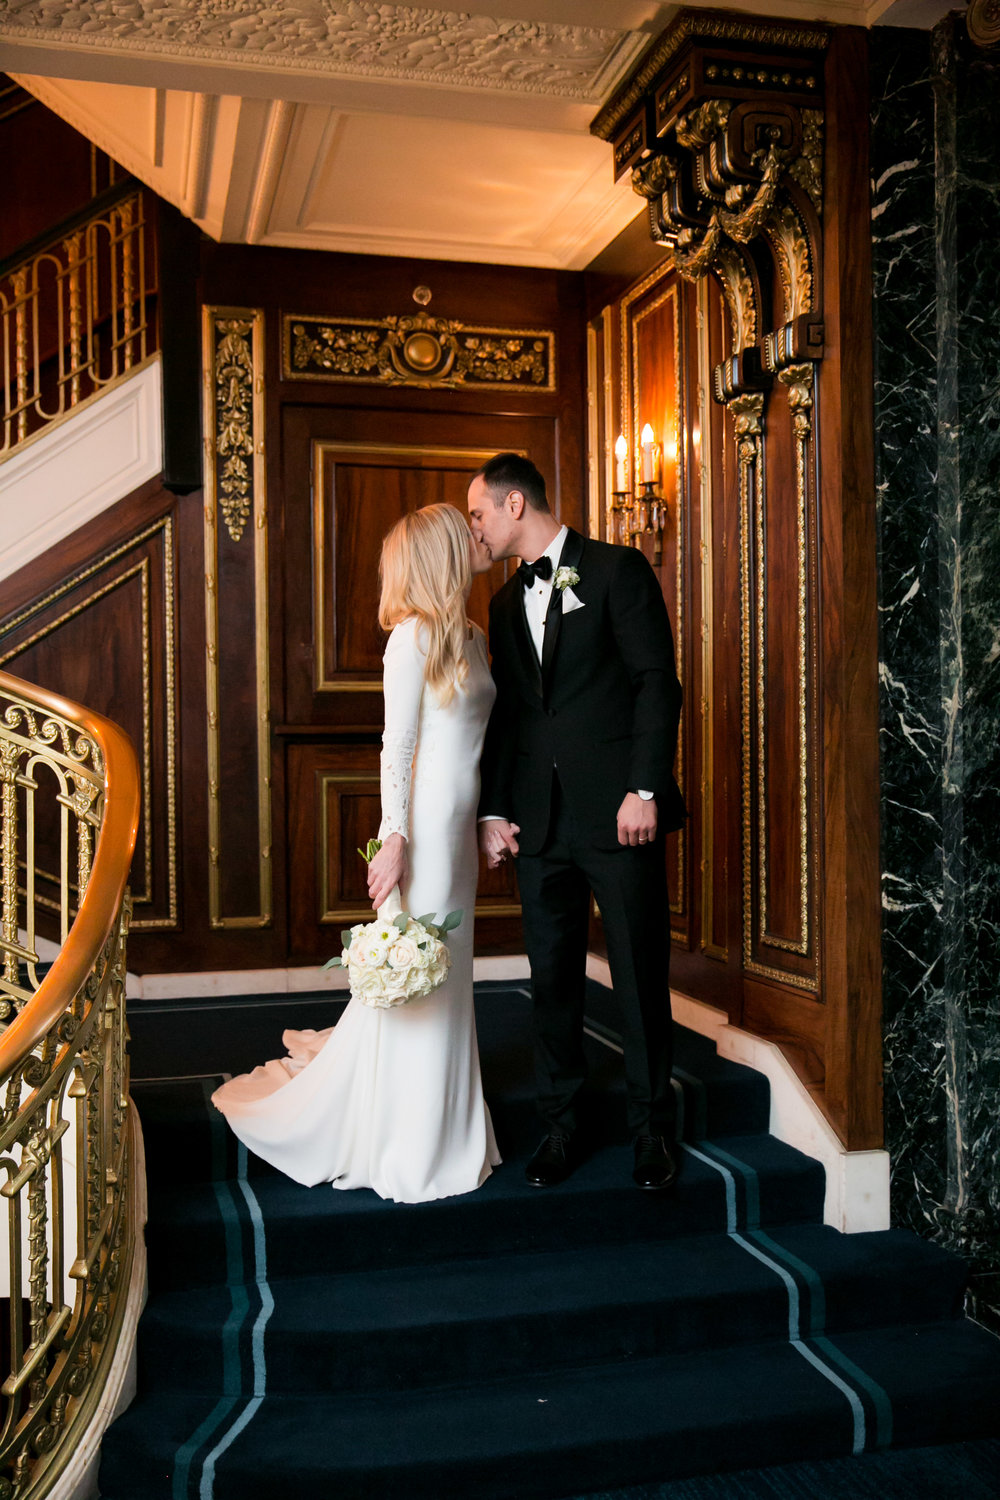 LisaDiederichPhotography_Meghan&Pete_ChicagoWedding_Blog-42.jpg